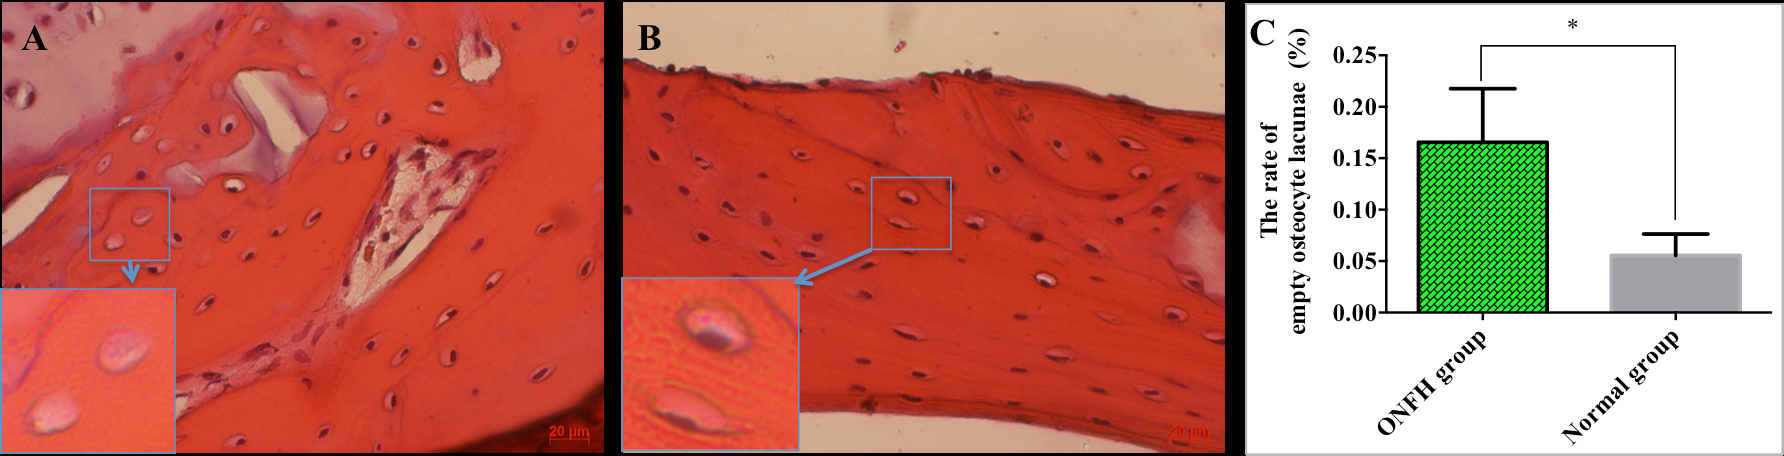 Figure 2 Histology of the bone (H&E staining)